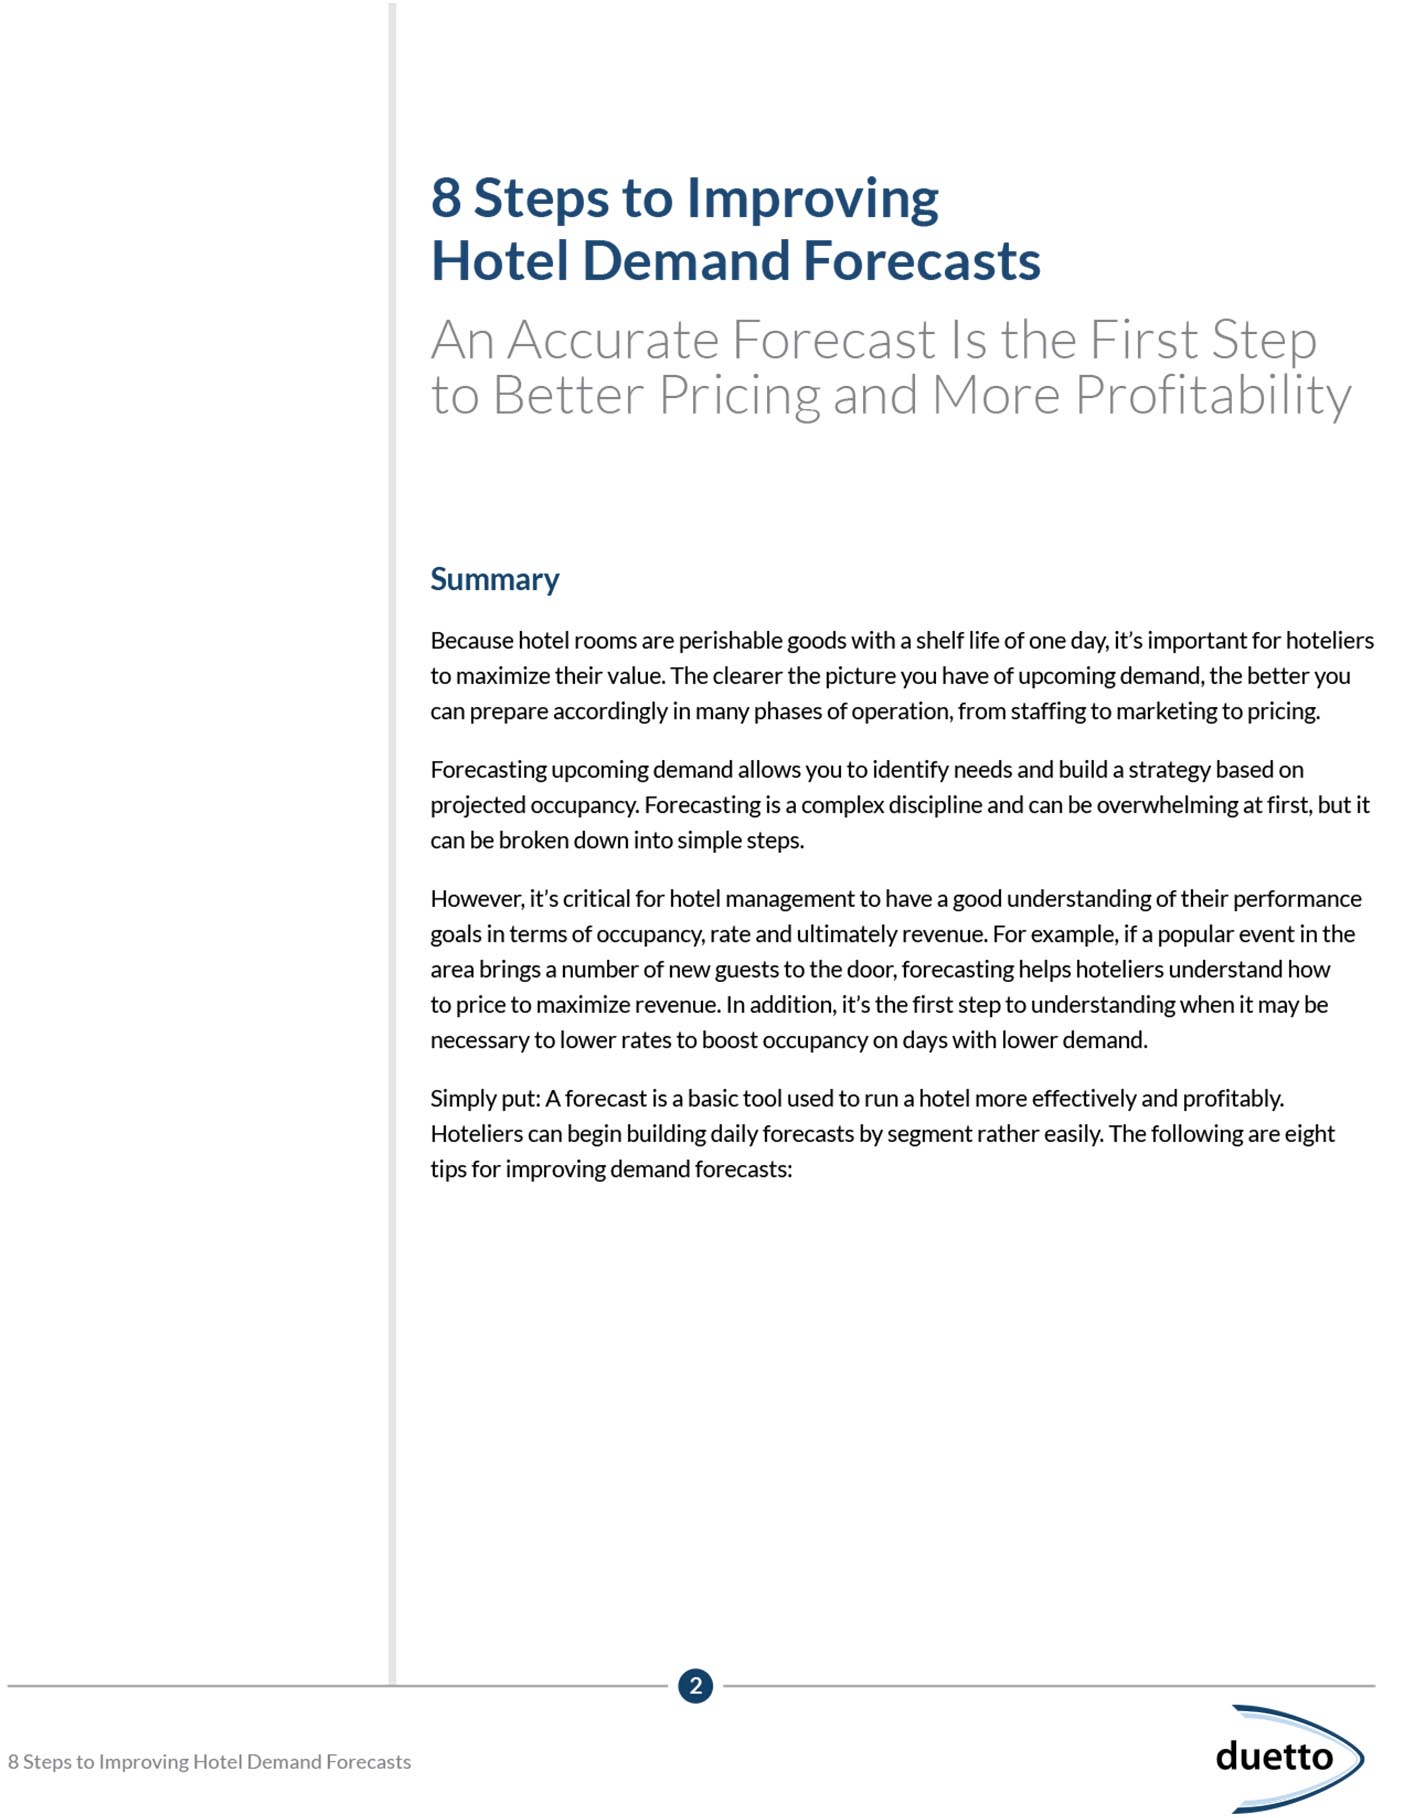 2 8 Steps Demand Forecasting-2.jpg